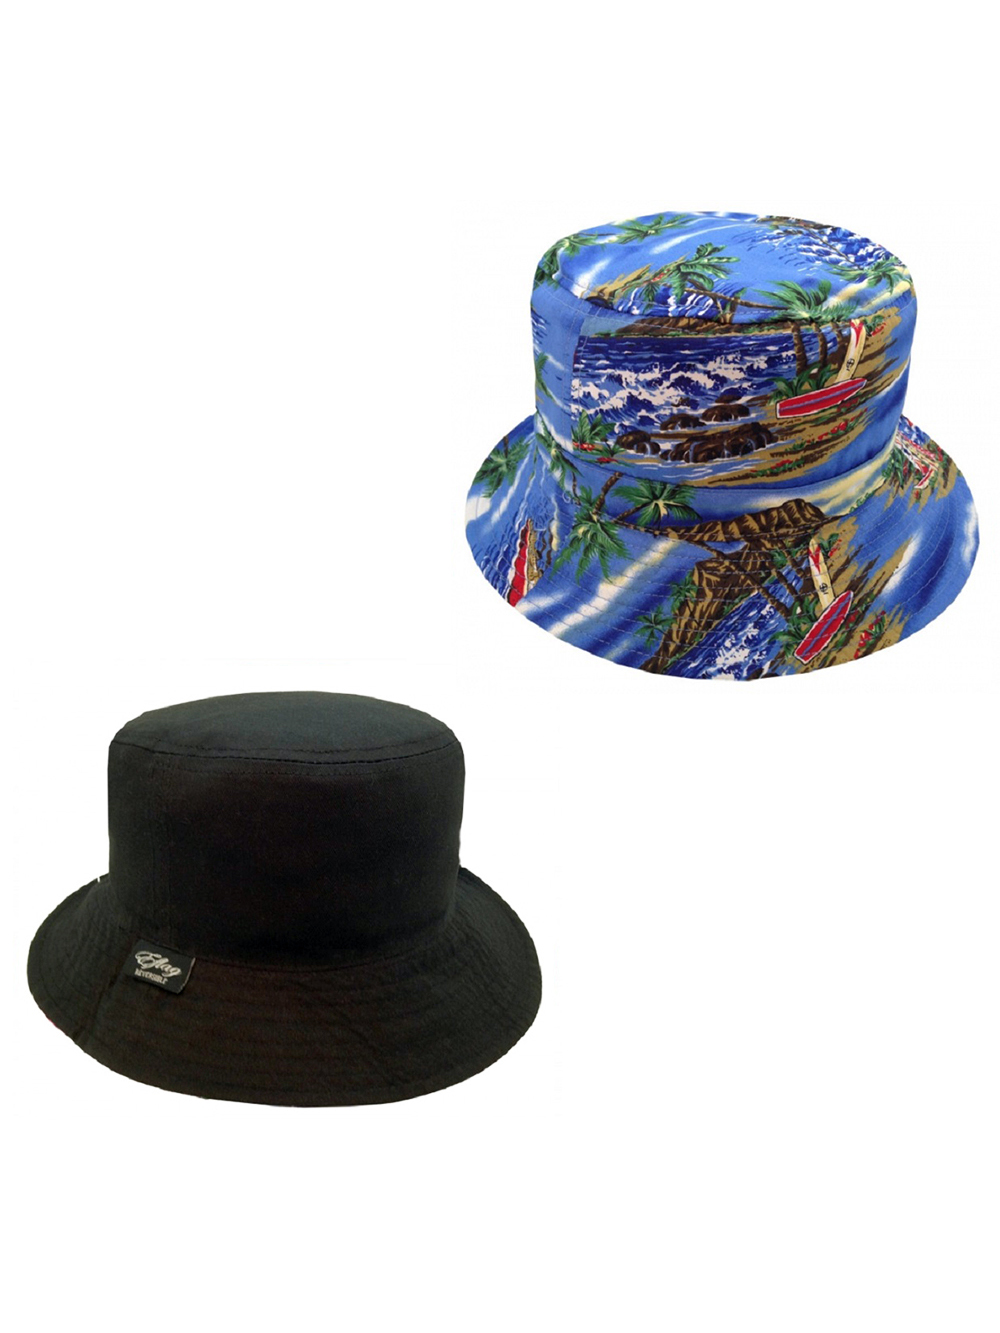 Outdoors Reversible Bucket Hats Floral Tropical Vacation Hiking 18e7f188047